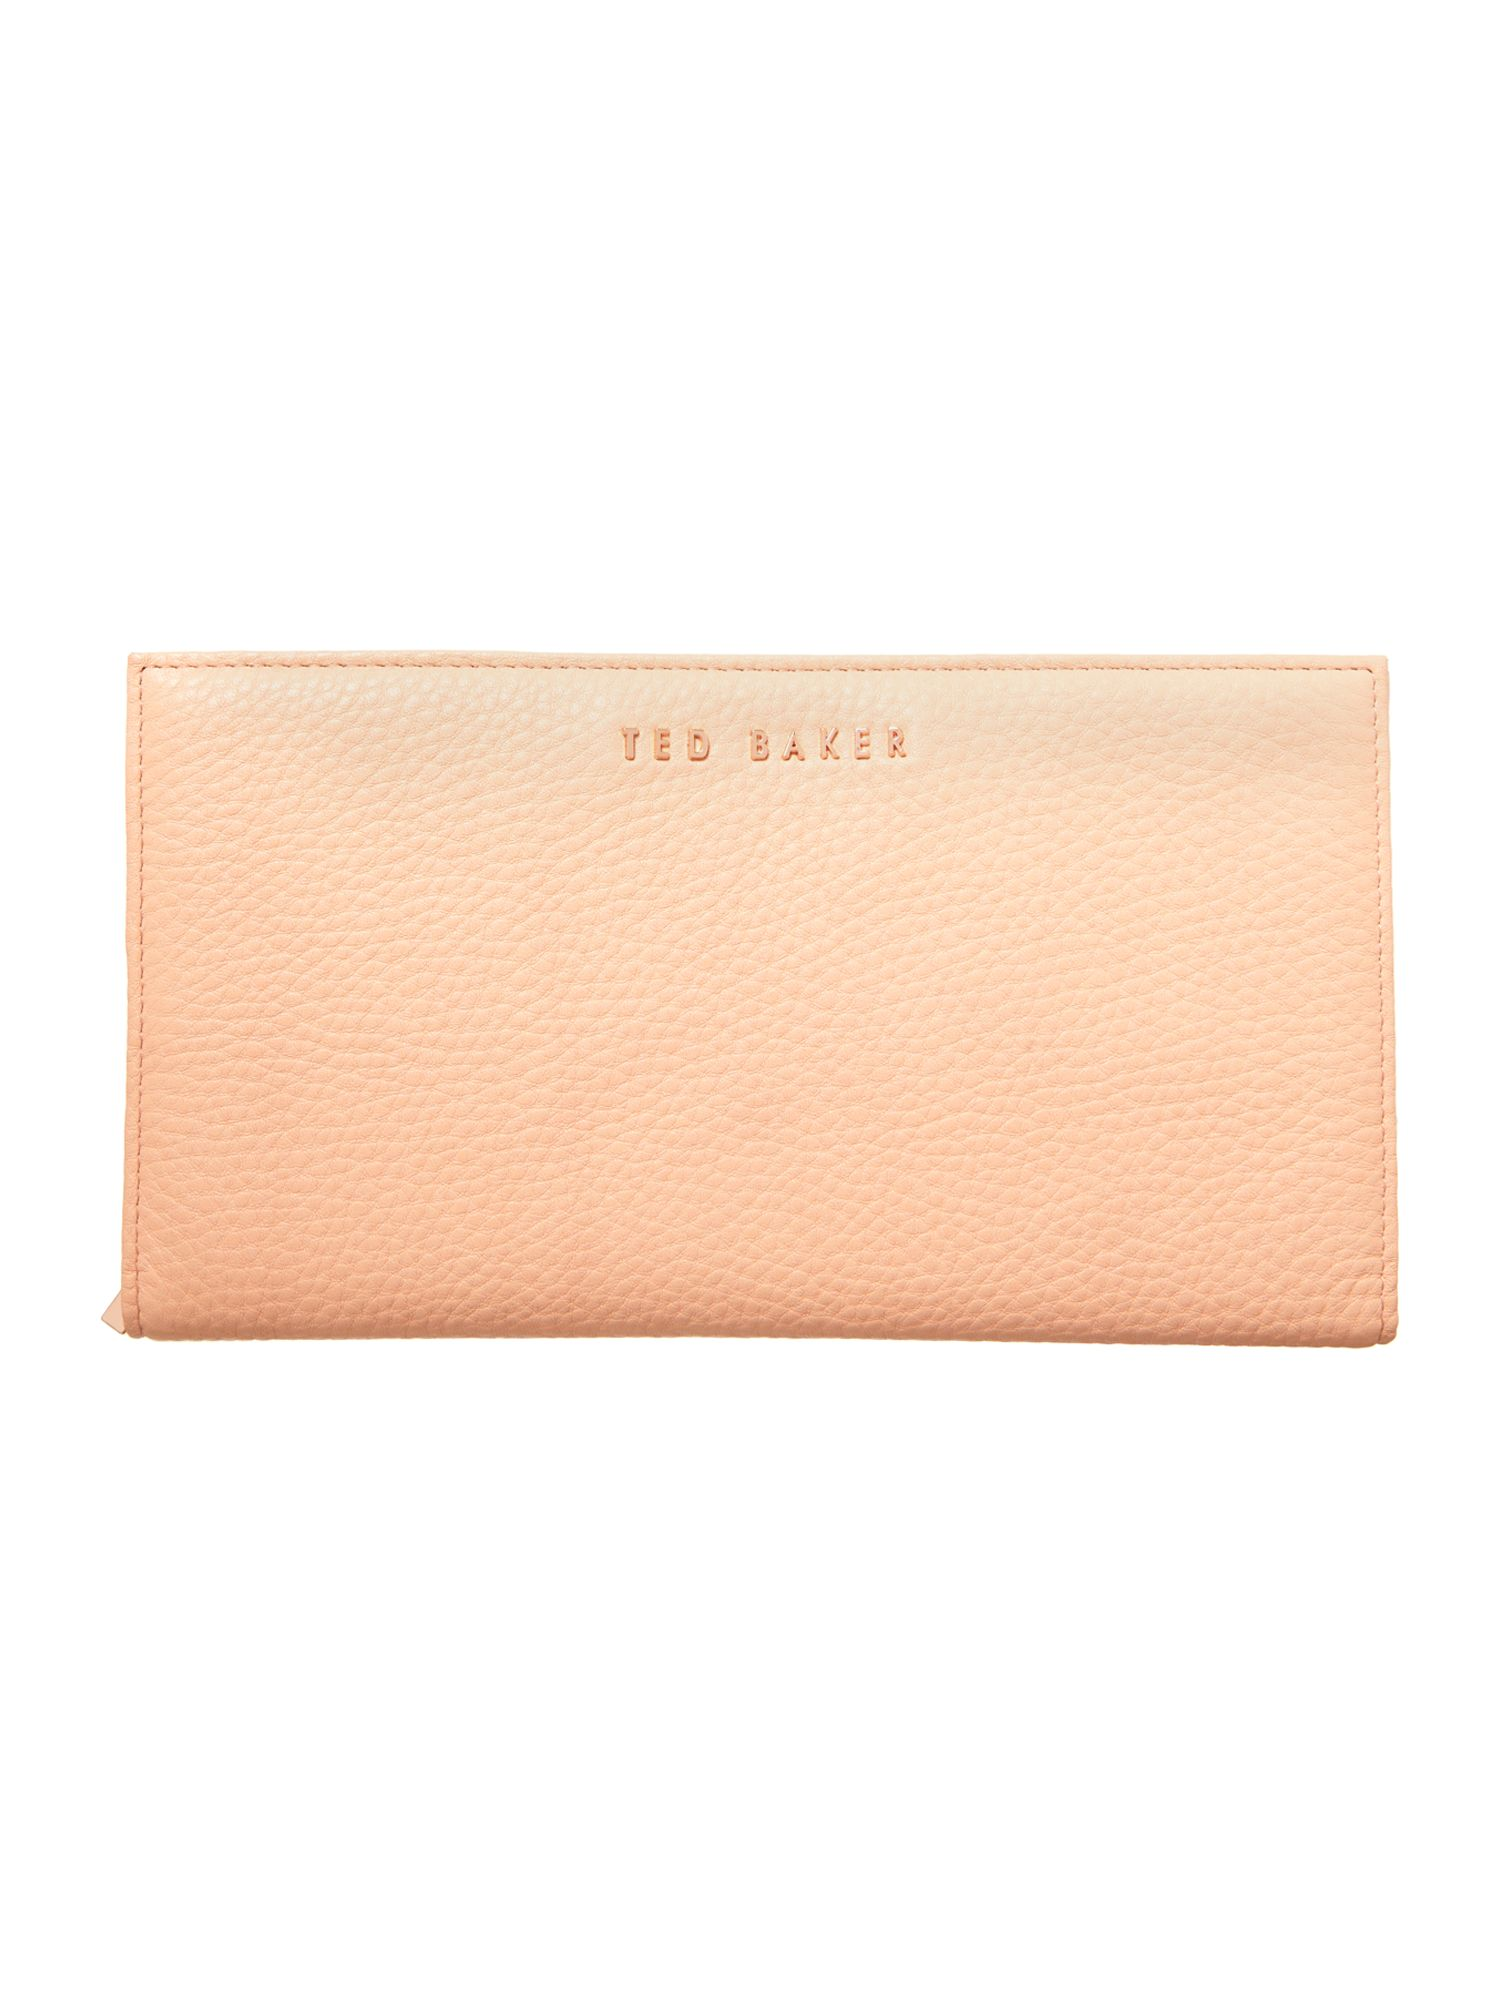 Orange leather travel purse